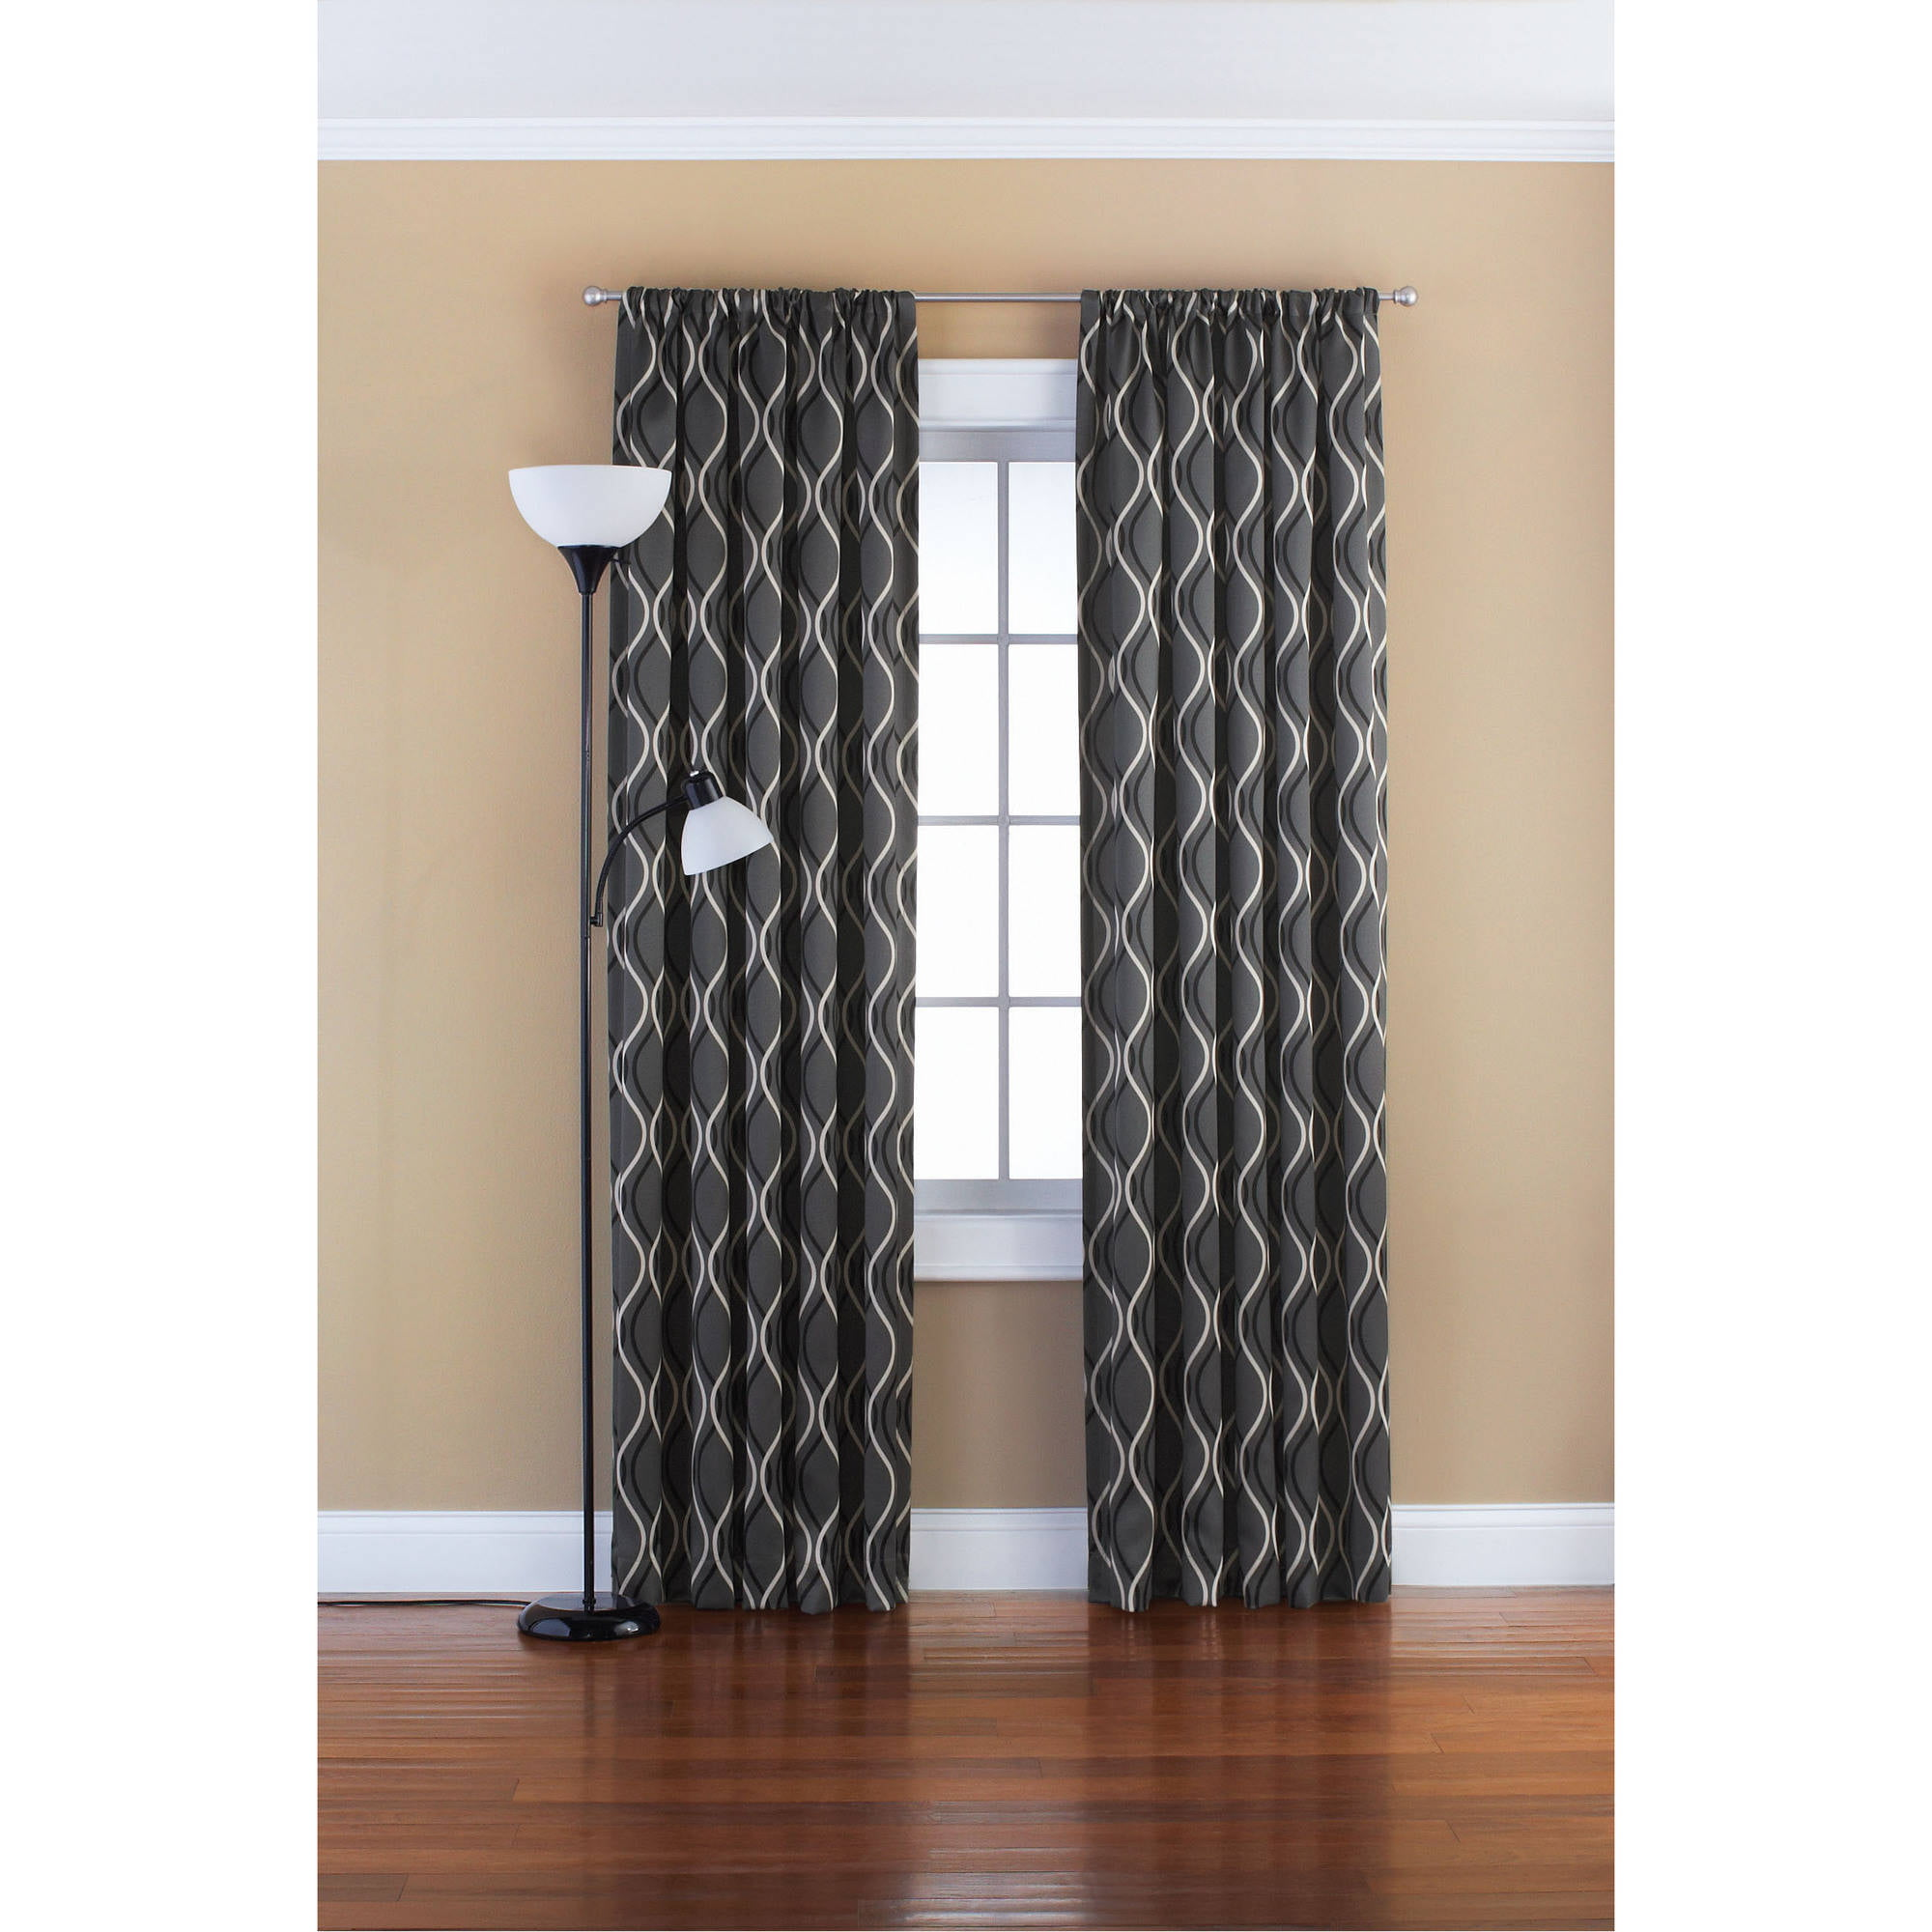 Mainstays Wave Room Darkening Polyester Curtain Panel Grey